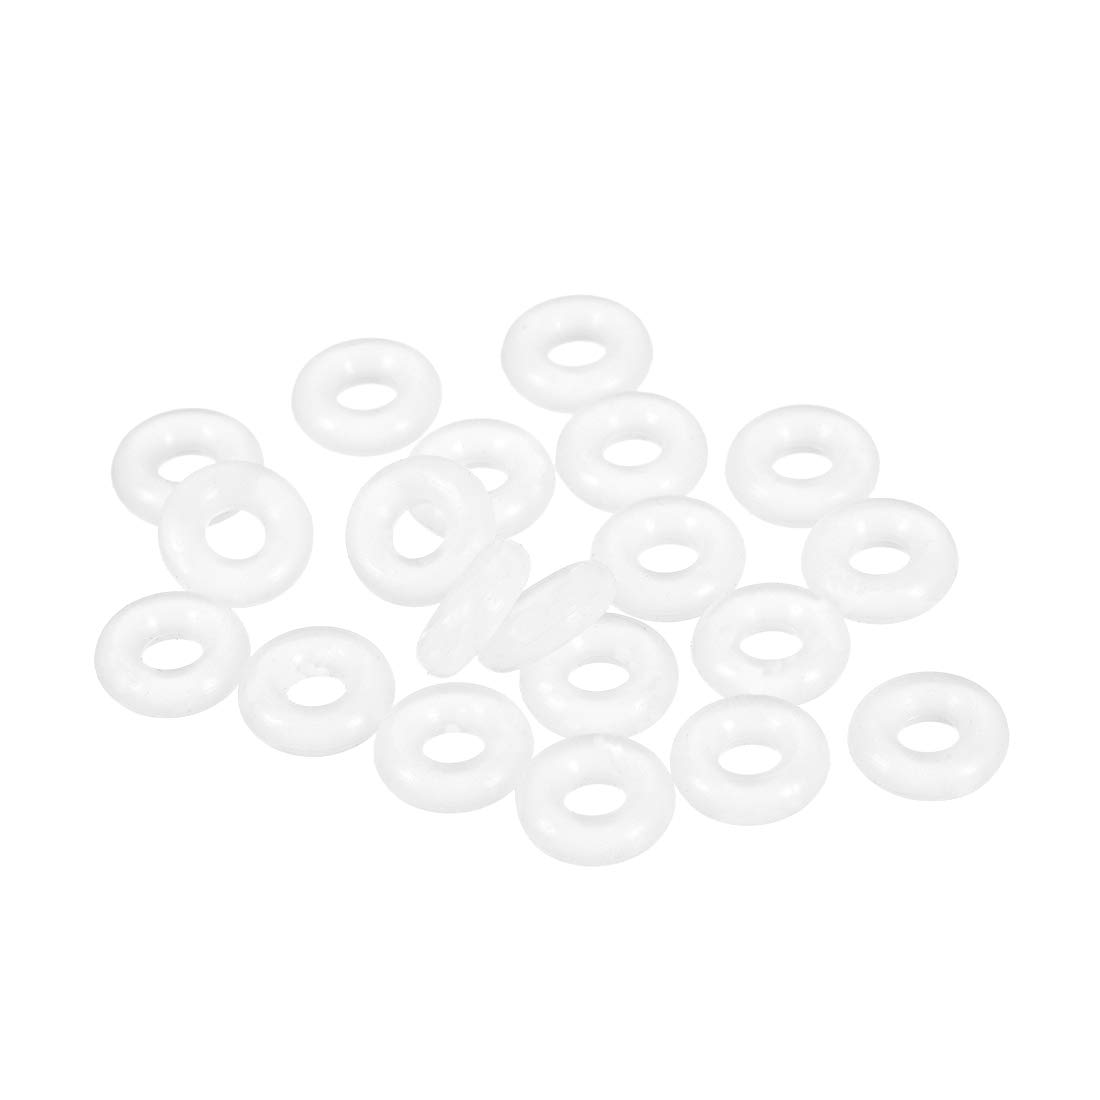 uxcell Silicone O-Rings, 4mm Inner Diameter, 10mm OD, 3mm Width, Seal Gasket 20pcs